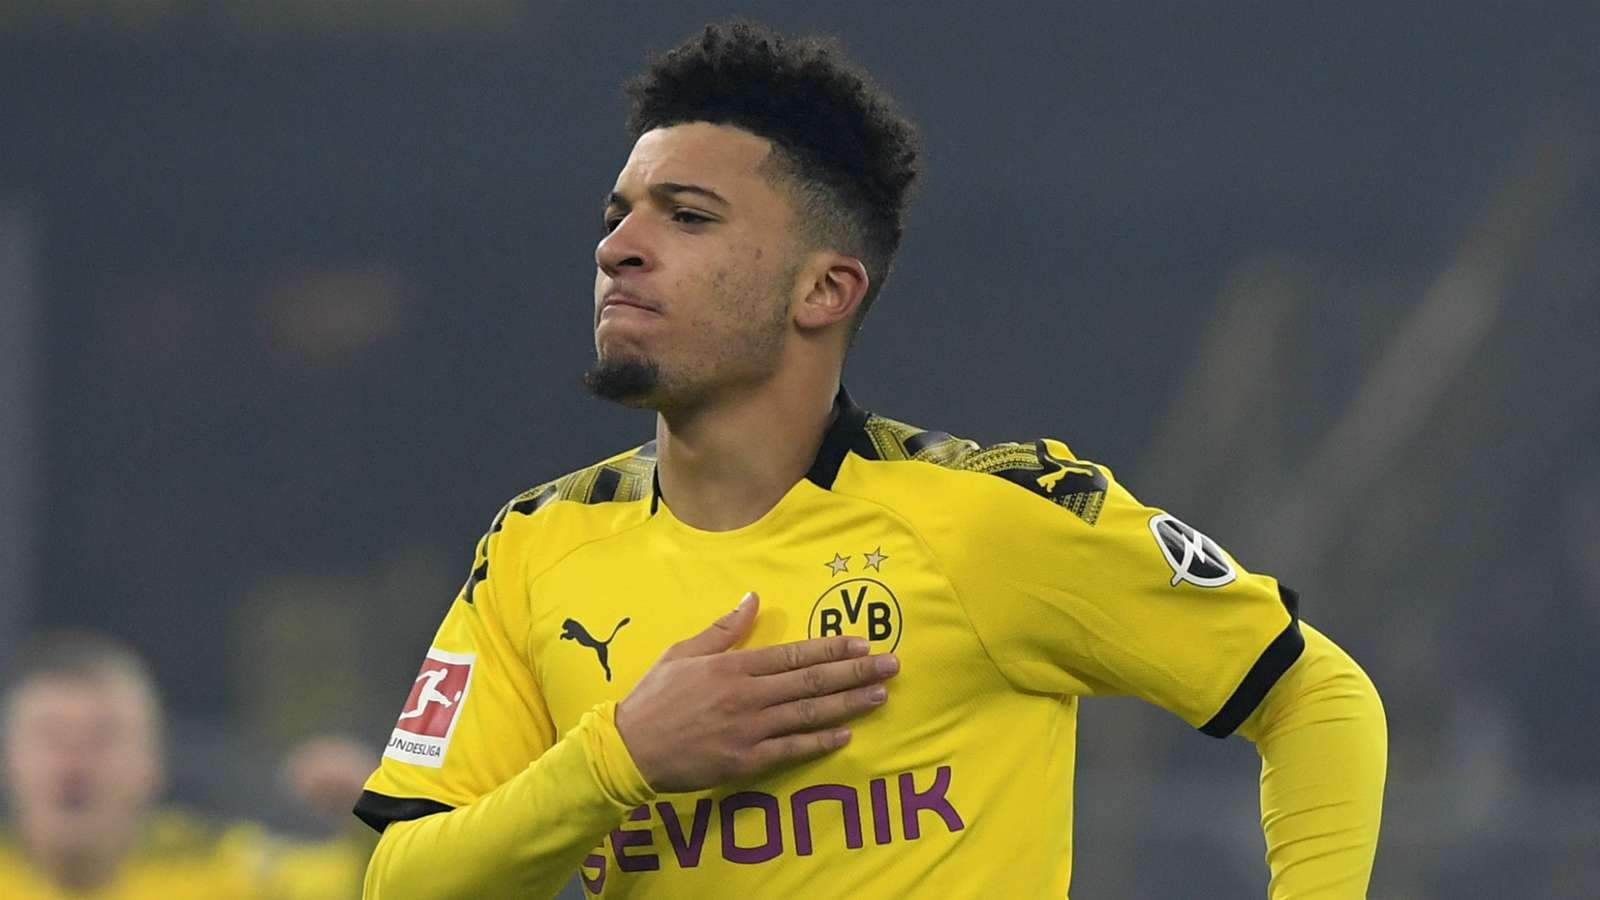 man utd targets sancho, grealish,maddison,bellingham for summer transfer - Bóng Đá